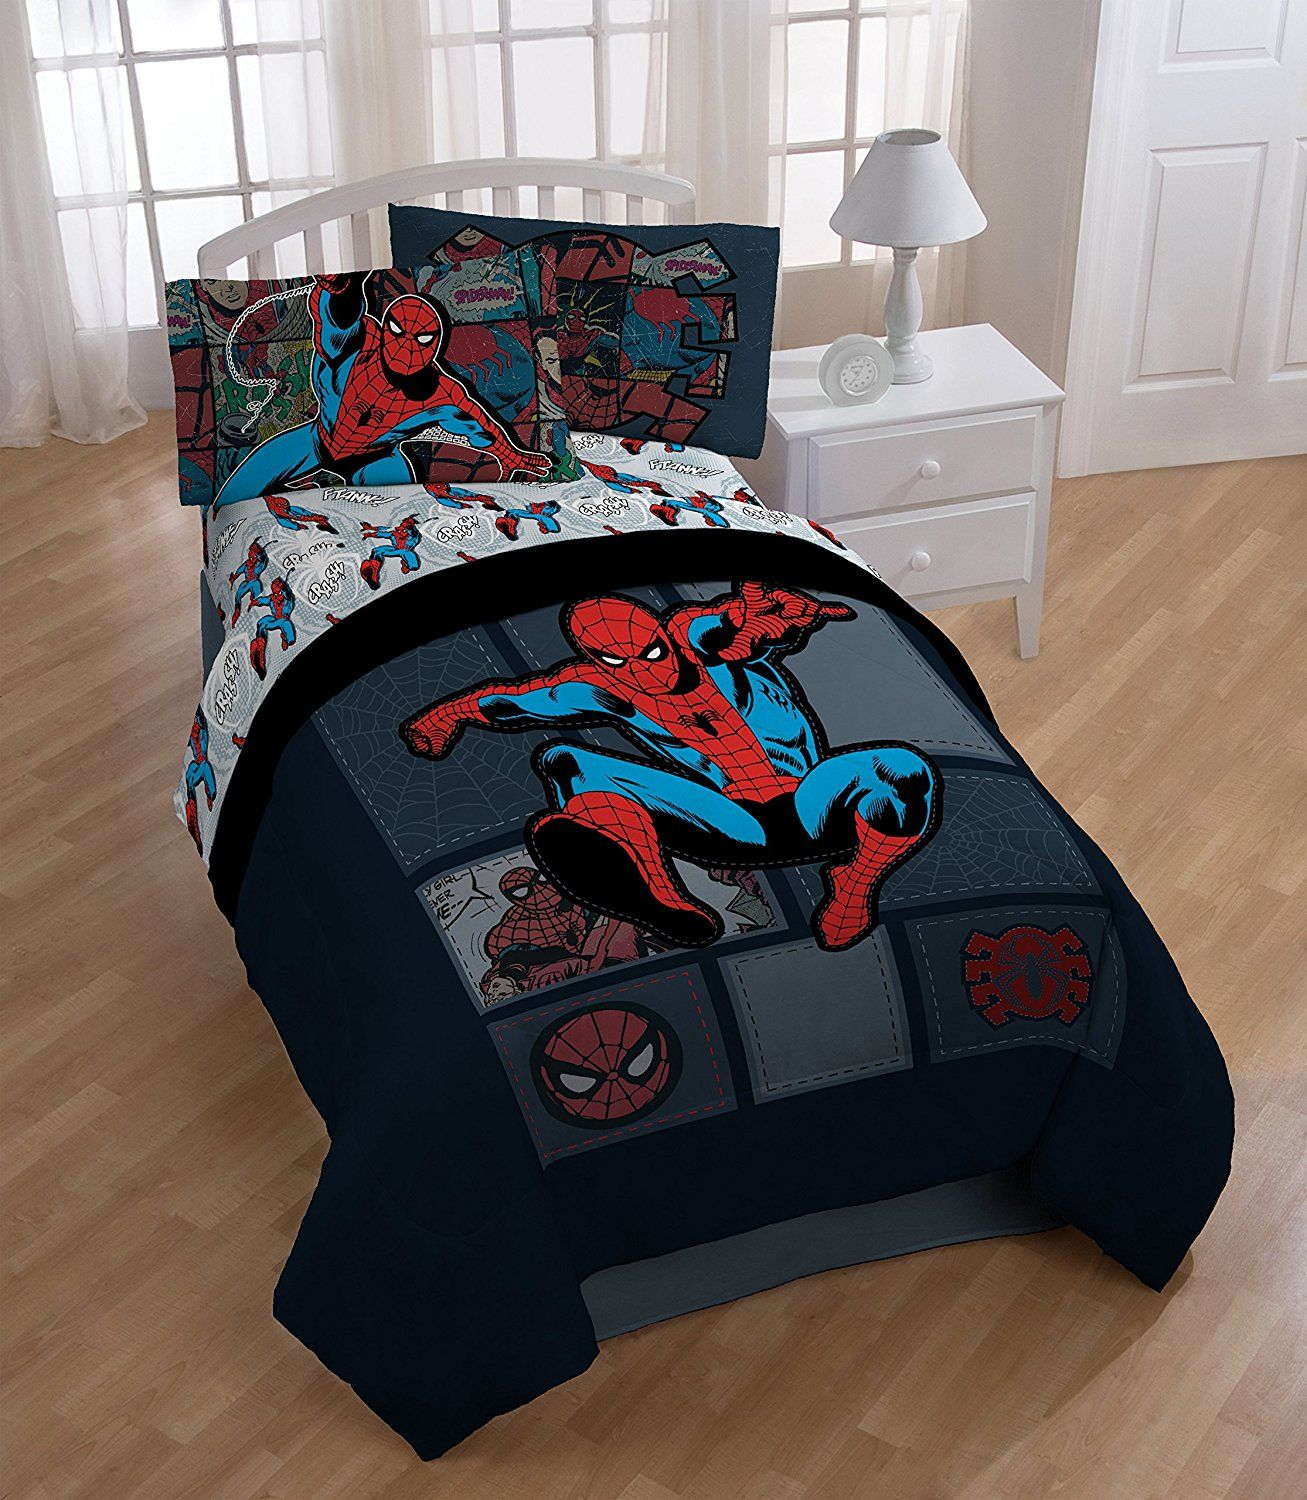 Spiderman and friends bedding - Amazon Com Spiderman Jump Twin Sheet Set And Comforter Bedding Bath